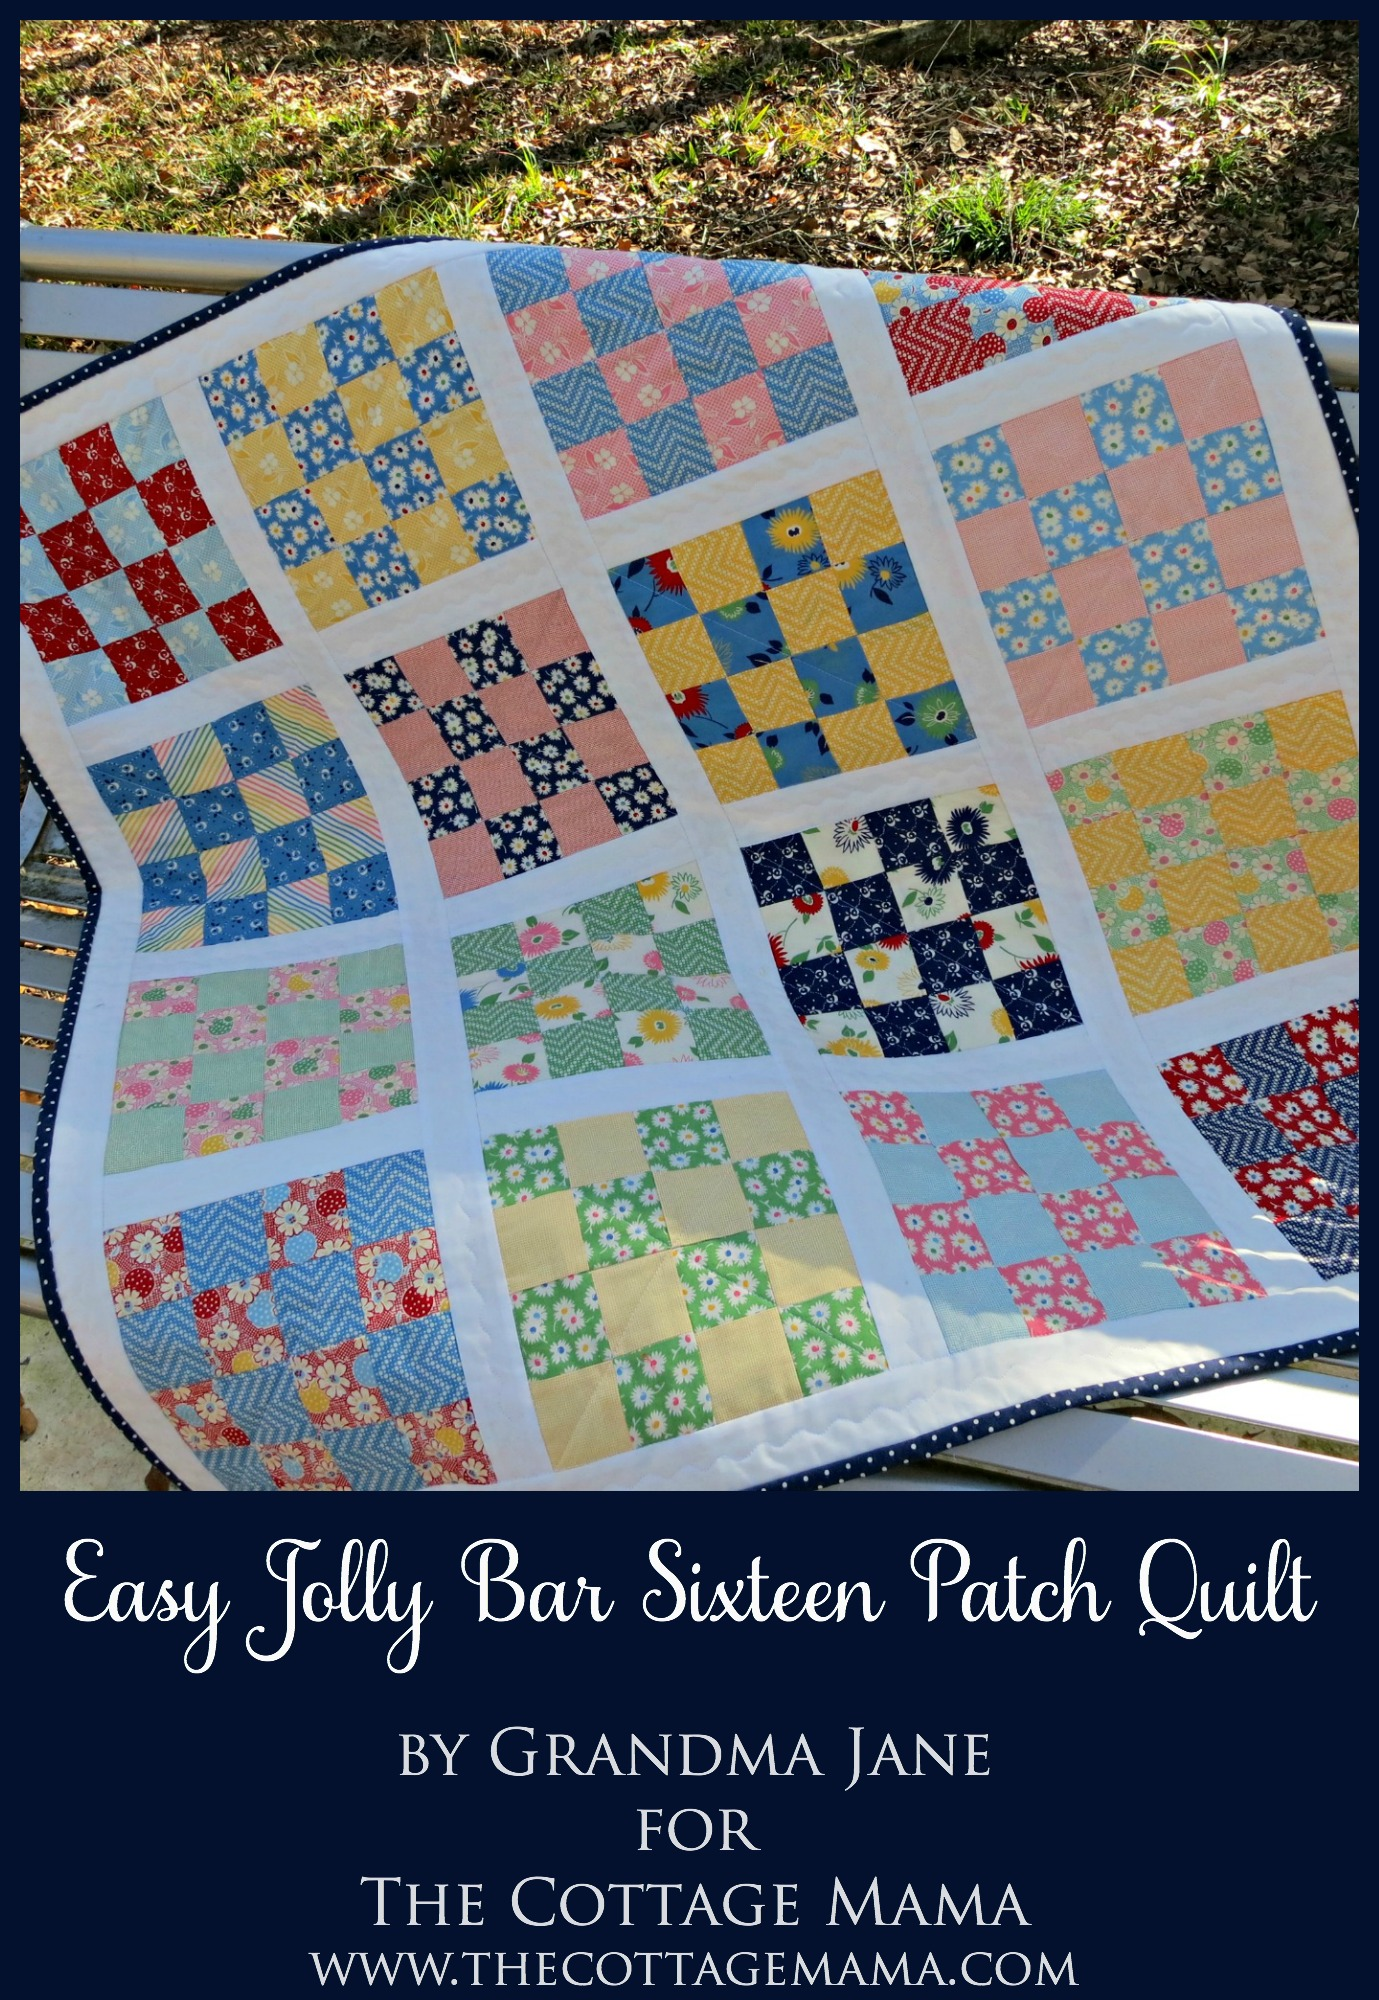 Easy Jolly Bar Sixteen Patch Quilt By Grandma Jane For The